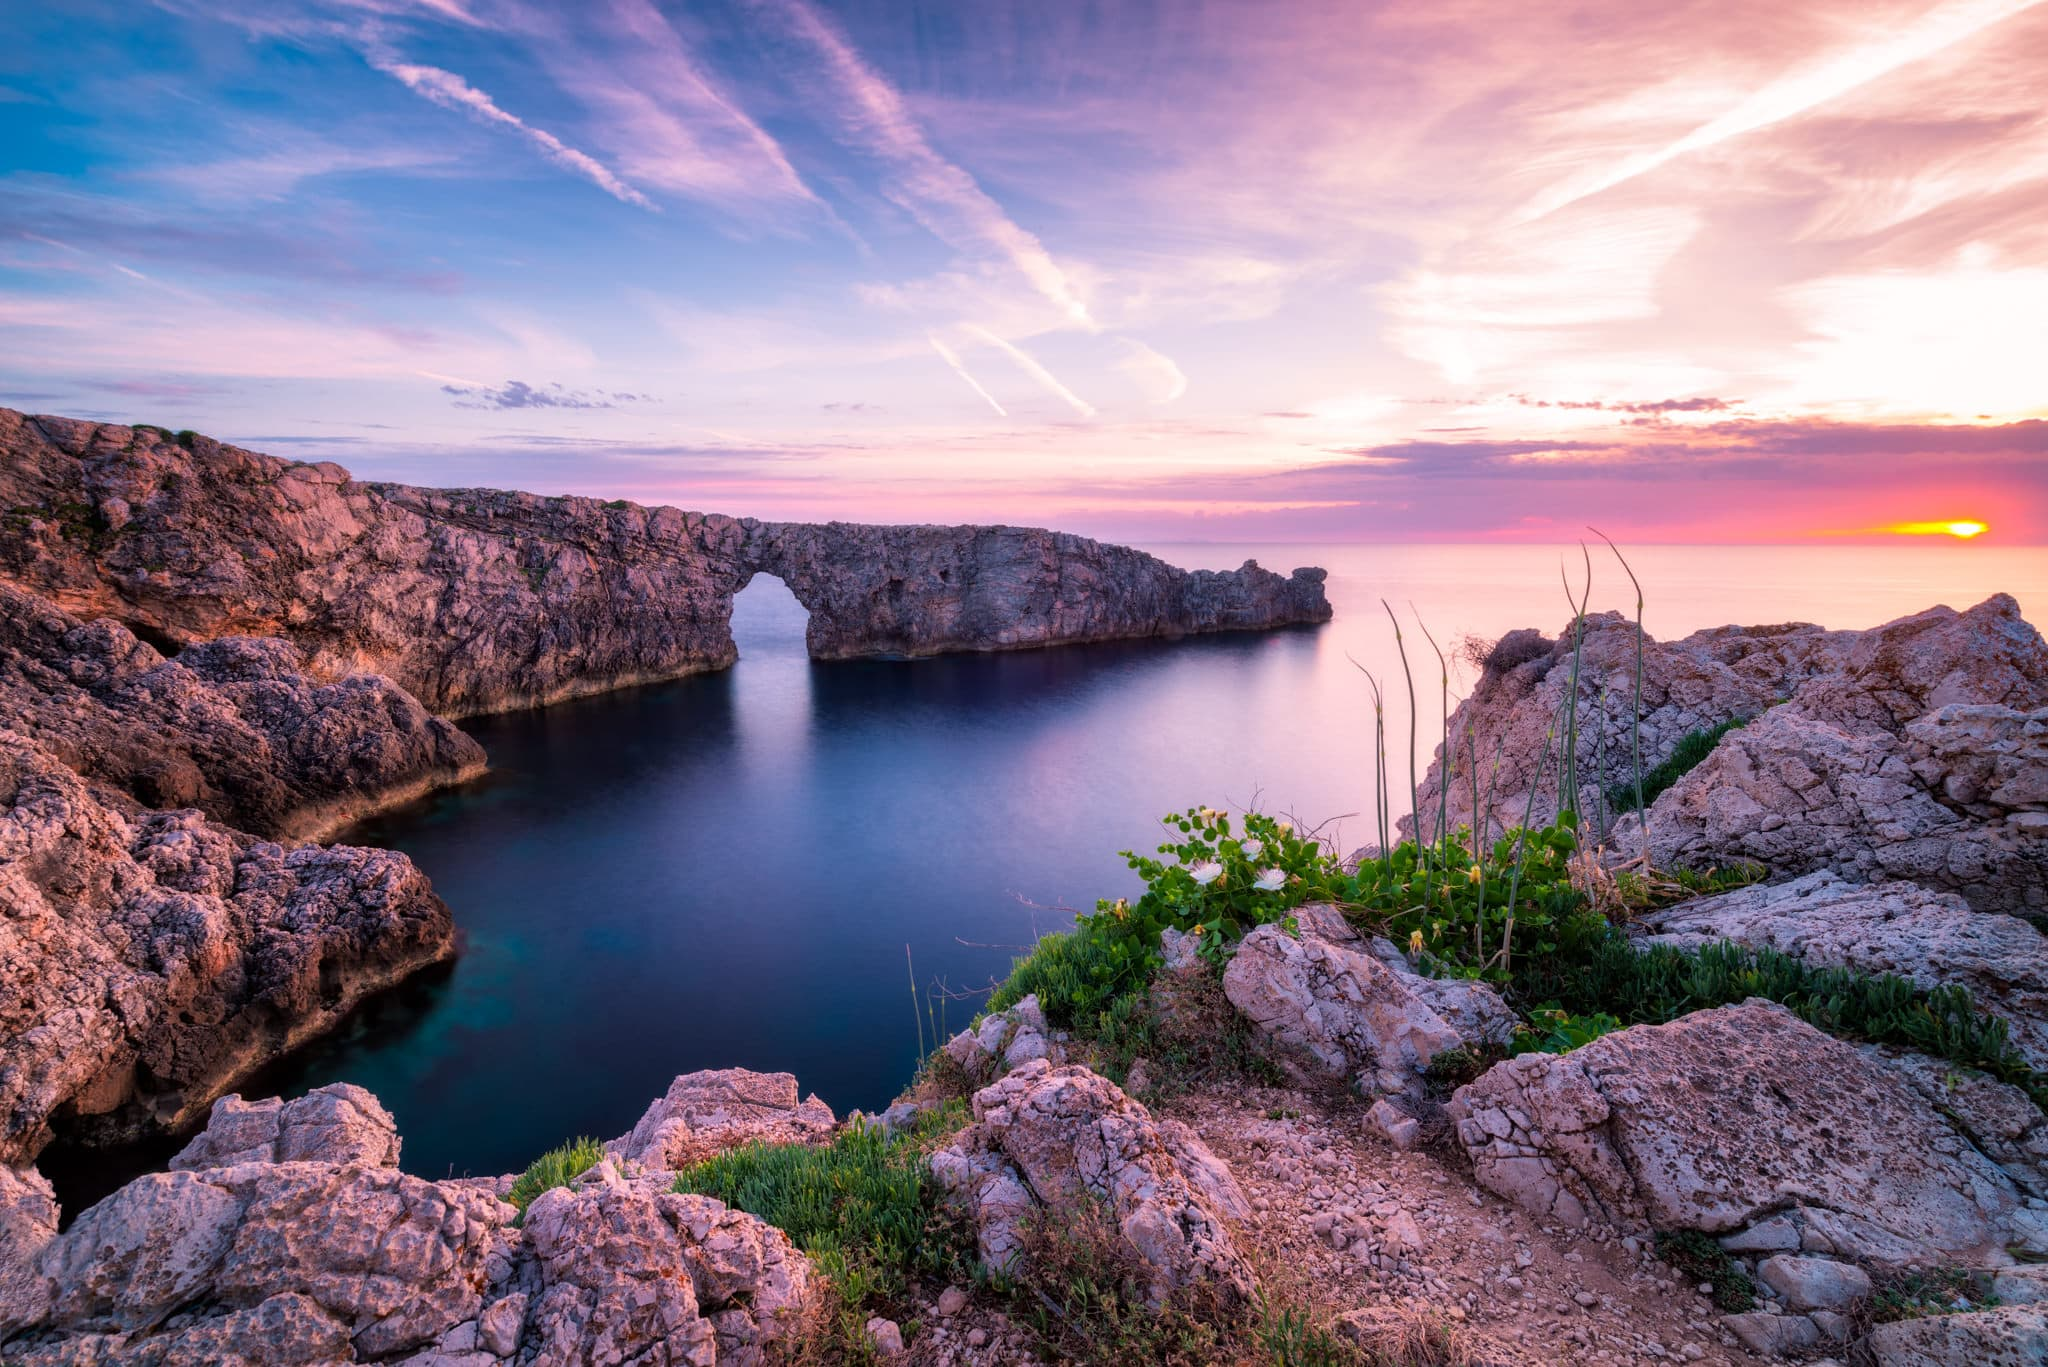 Menorca Cliffs - Pont d'en Gil bridge in the evening, Spain.